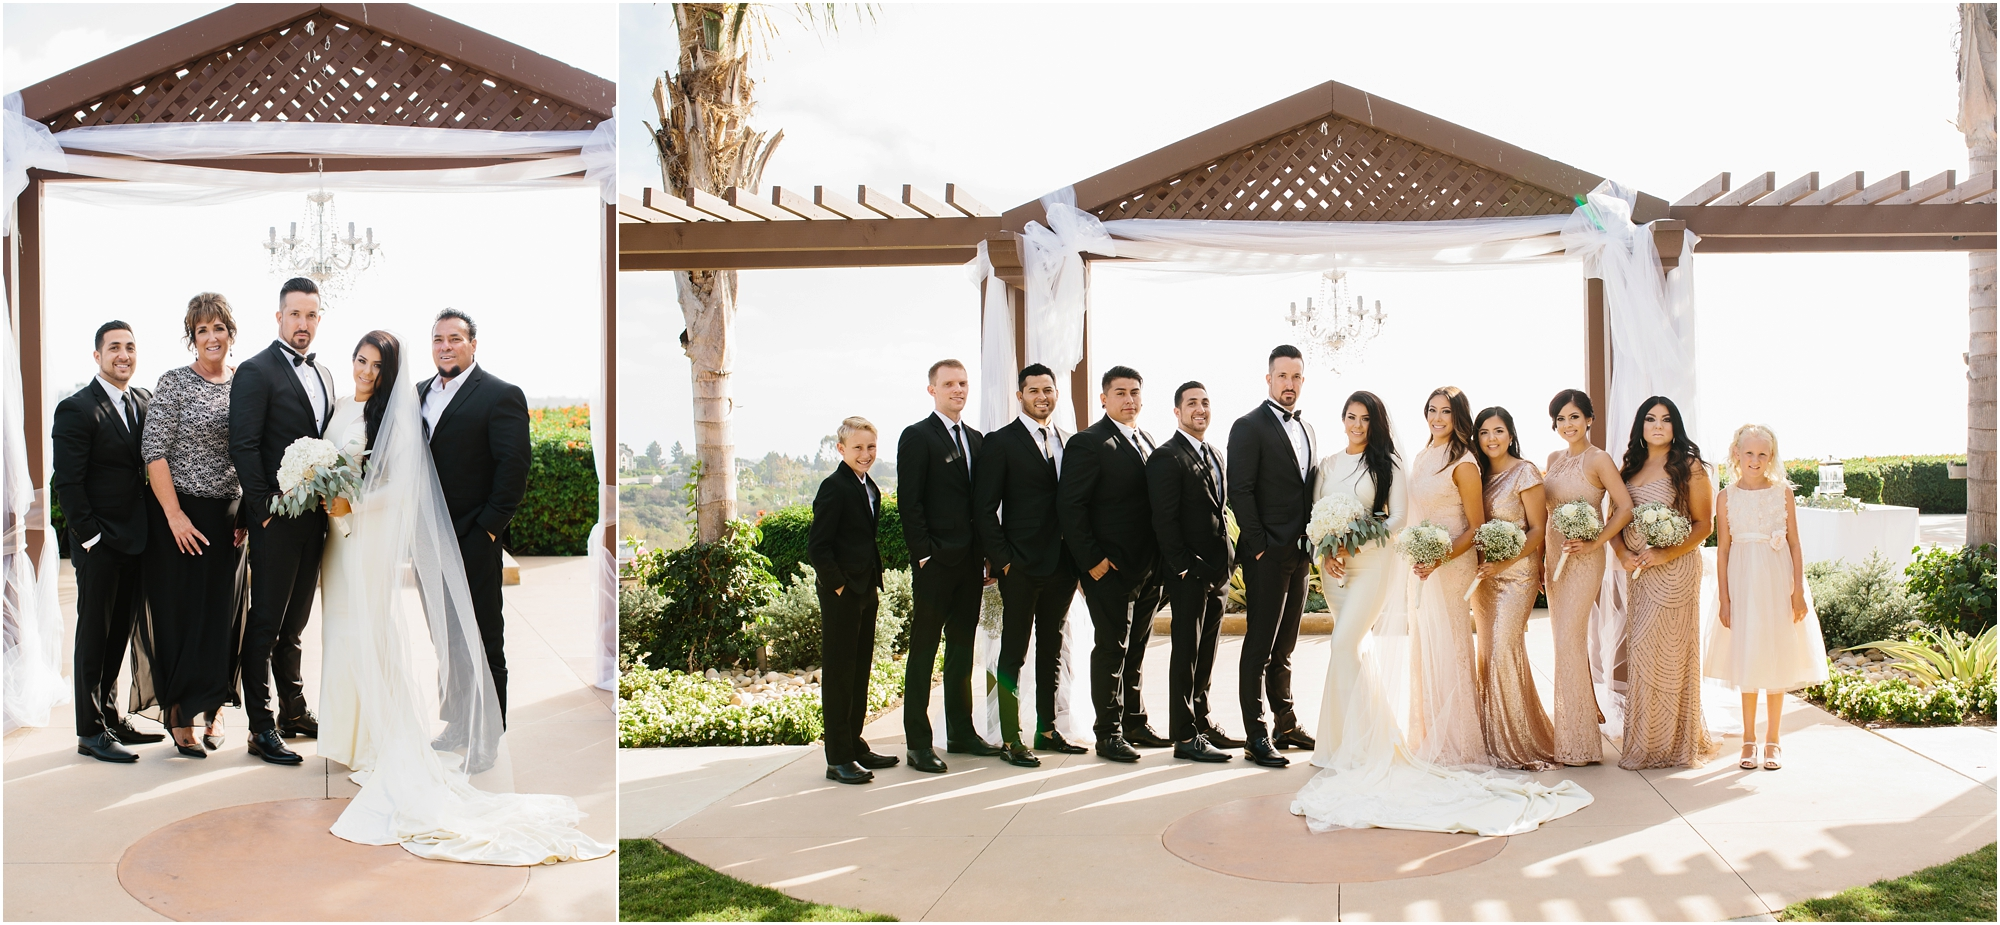 Grand Pacific Palisades Wedding - http://brittneyhannonphotography.com